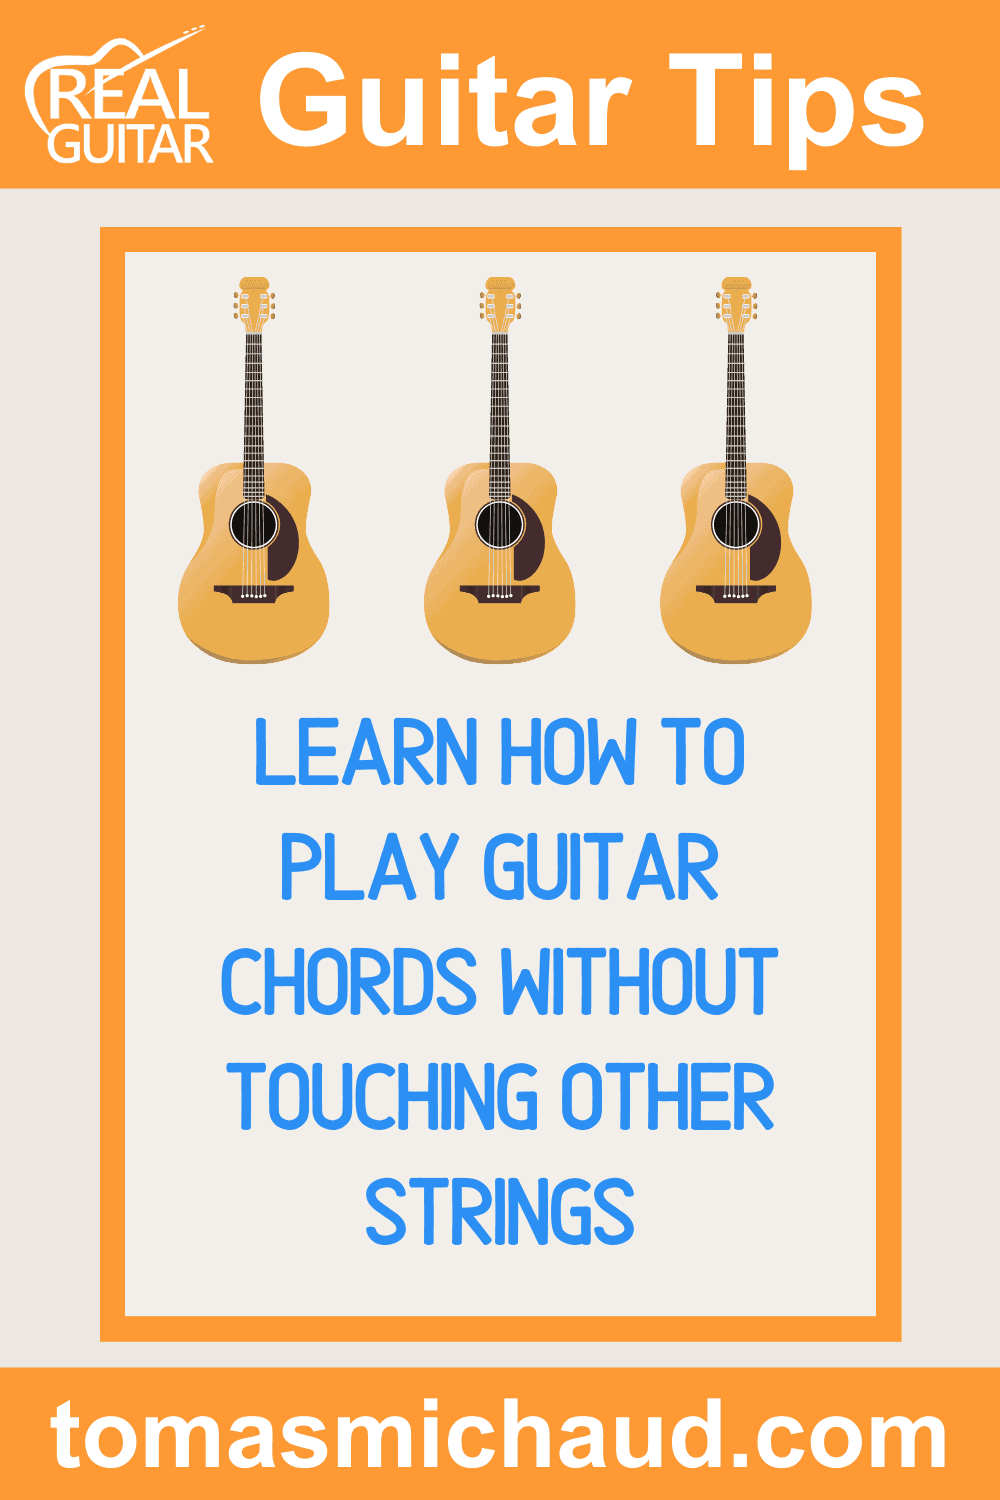 Learn How To Play Guitar Chords Without Touching Other Strings